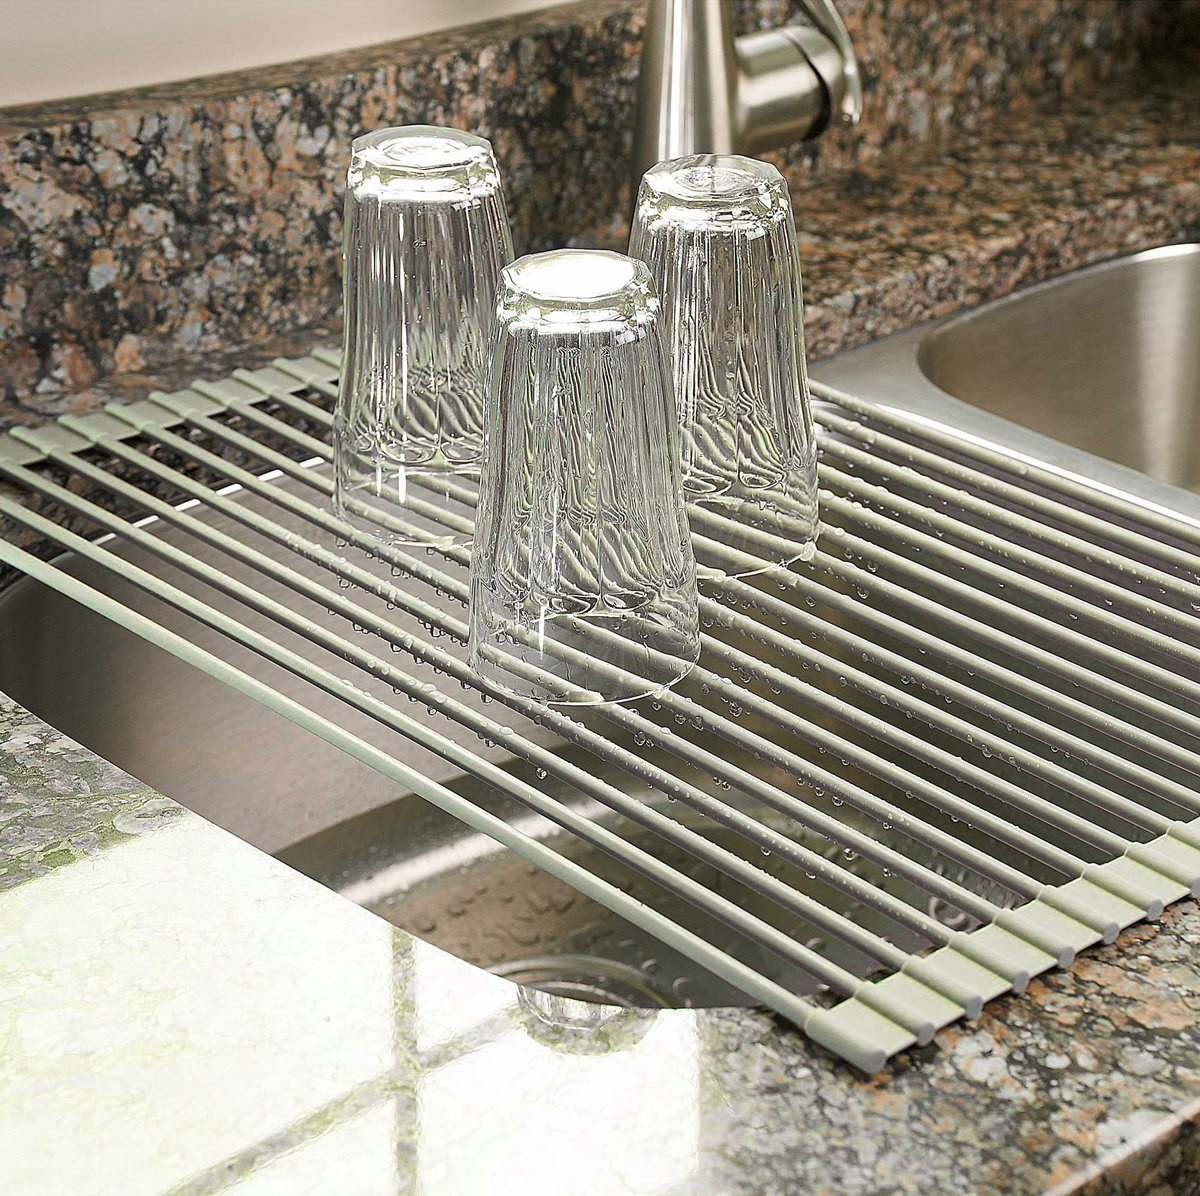 11 Must Have Sink Accesories And Products To Organize My Sink